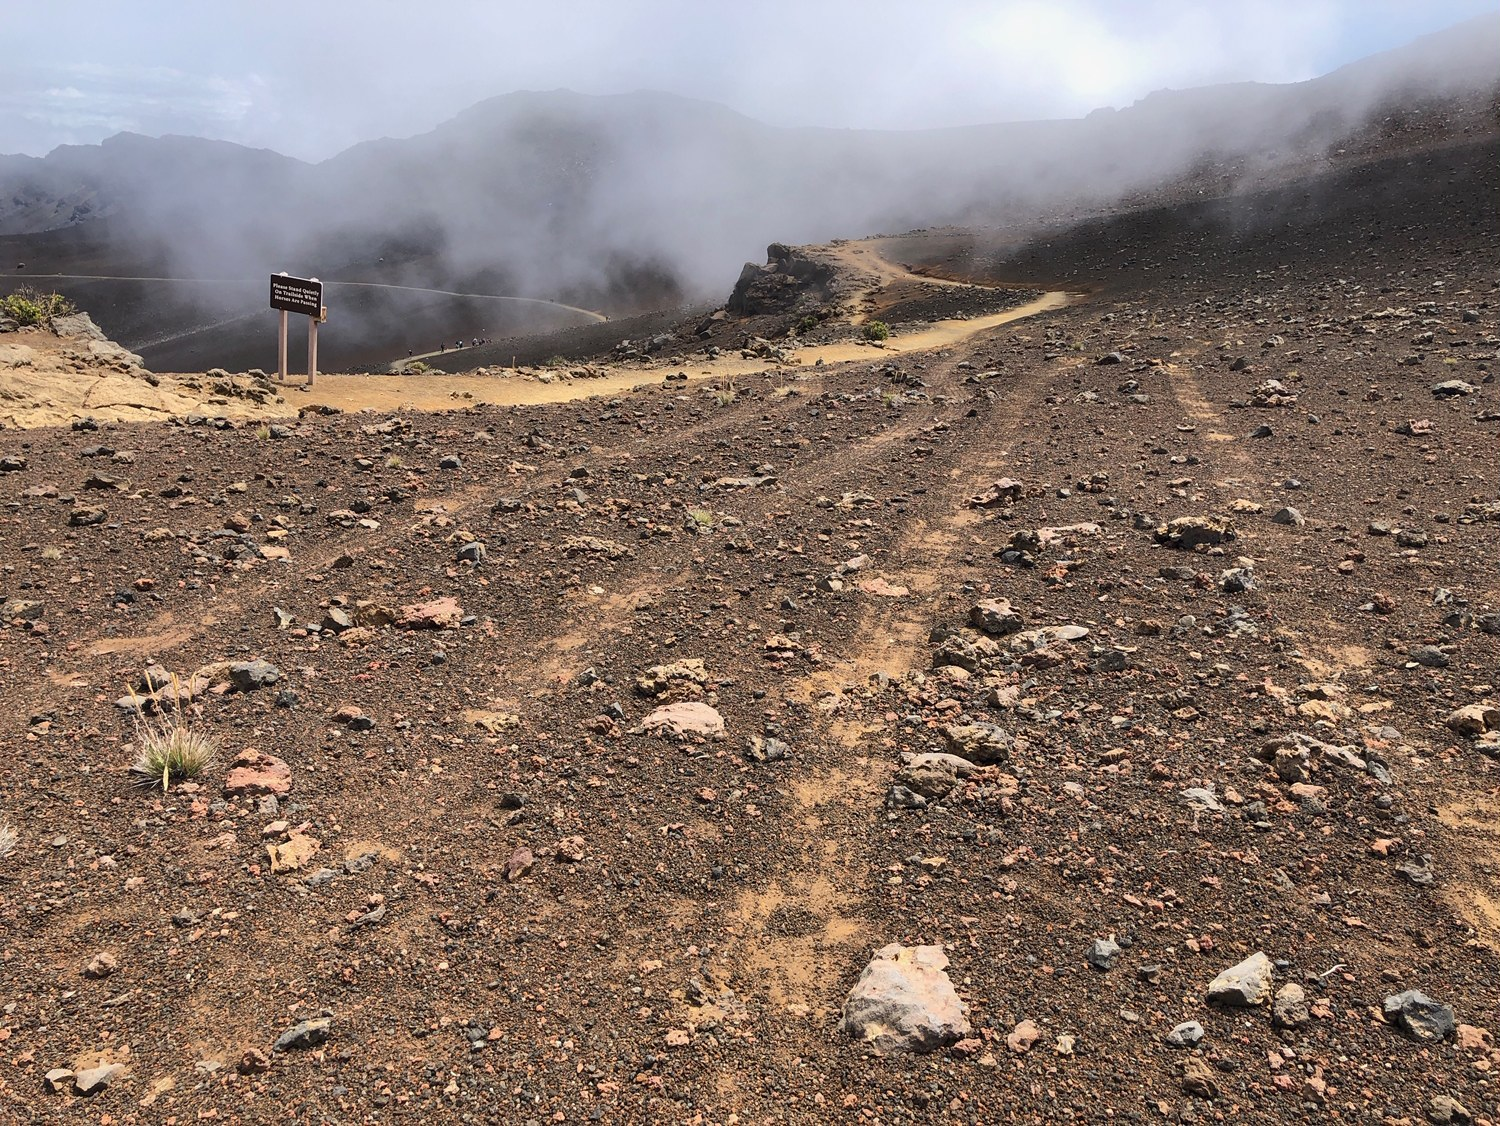 Off-road Vehicle Damages Silverswords and Trail at Haleakalā Summit